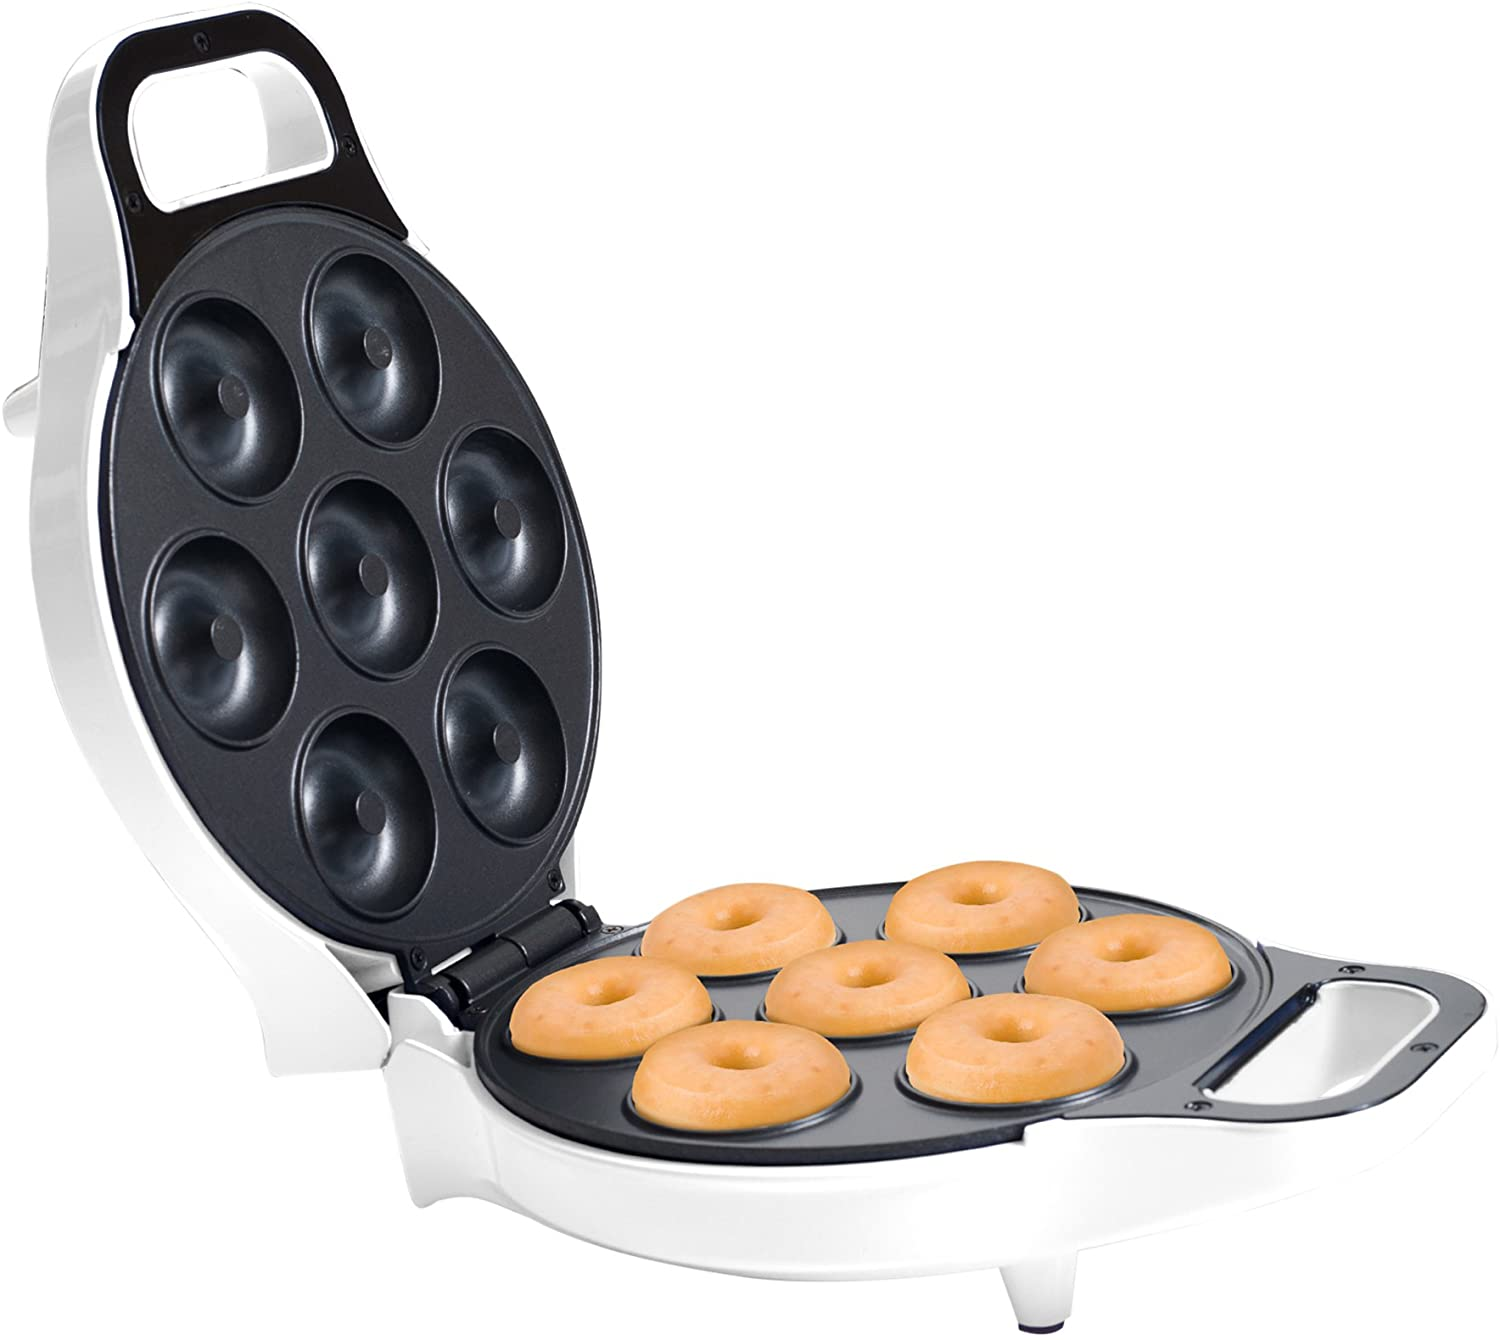 Chef Buddy Donut Maker